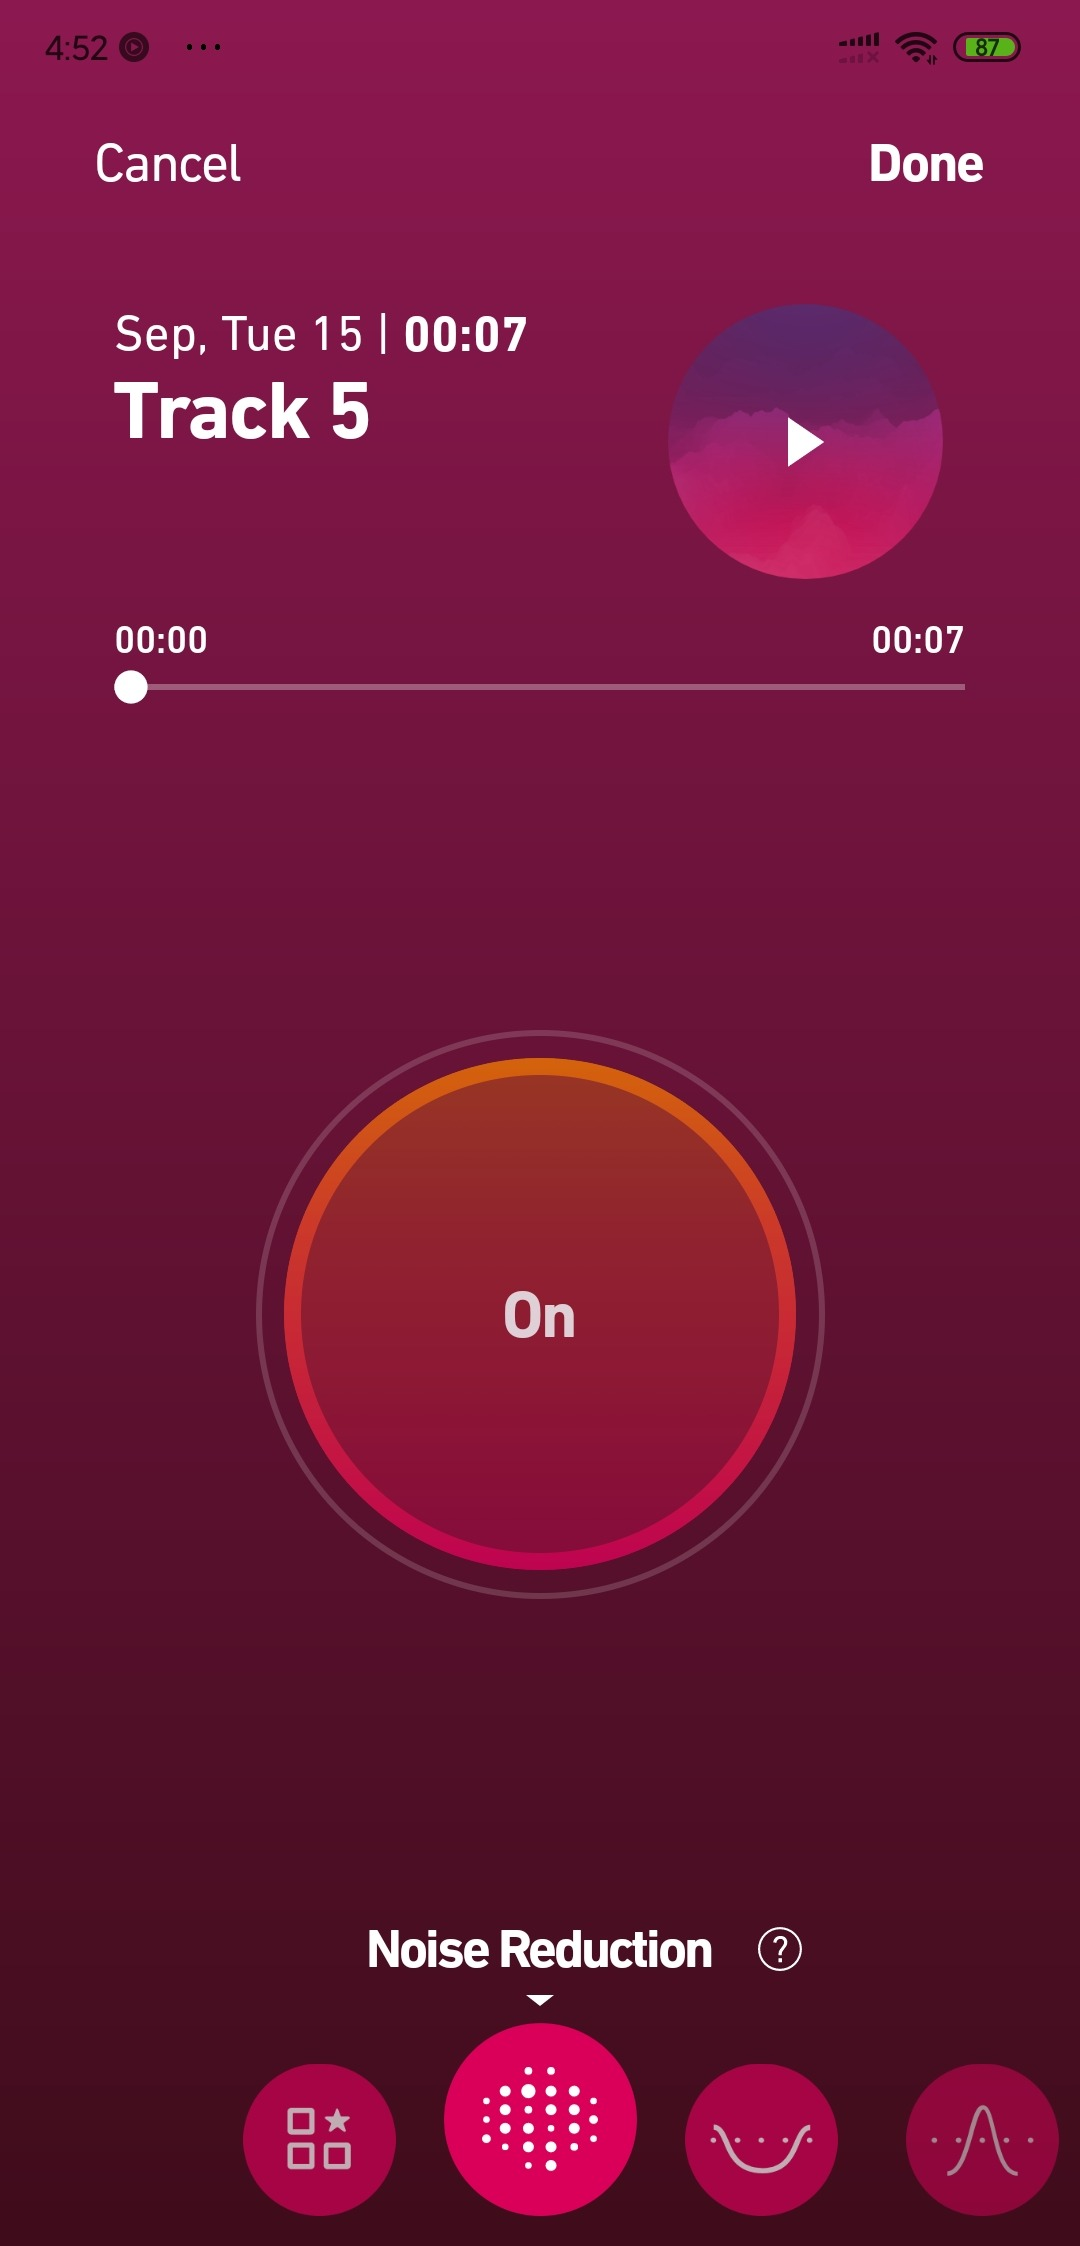 noise reduction in dolby on Remove Background Noise From Video in Android